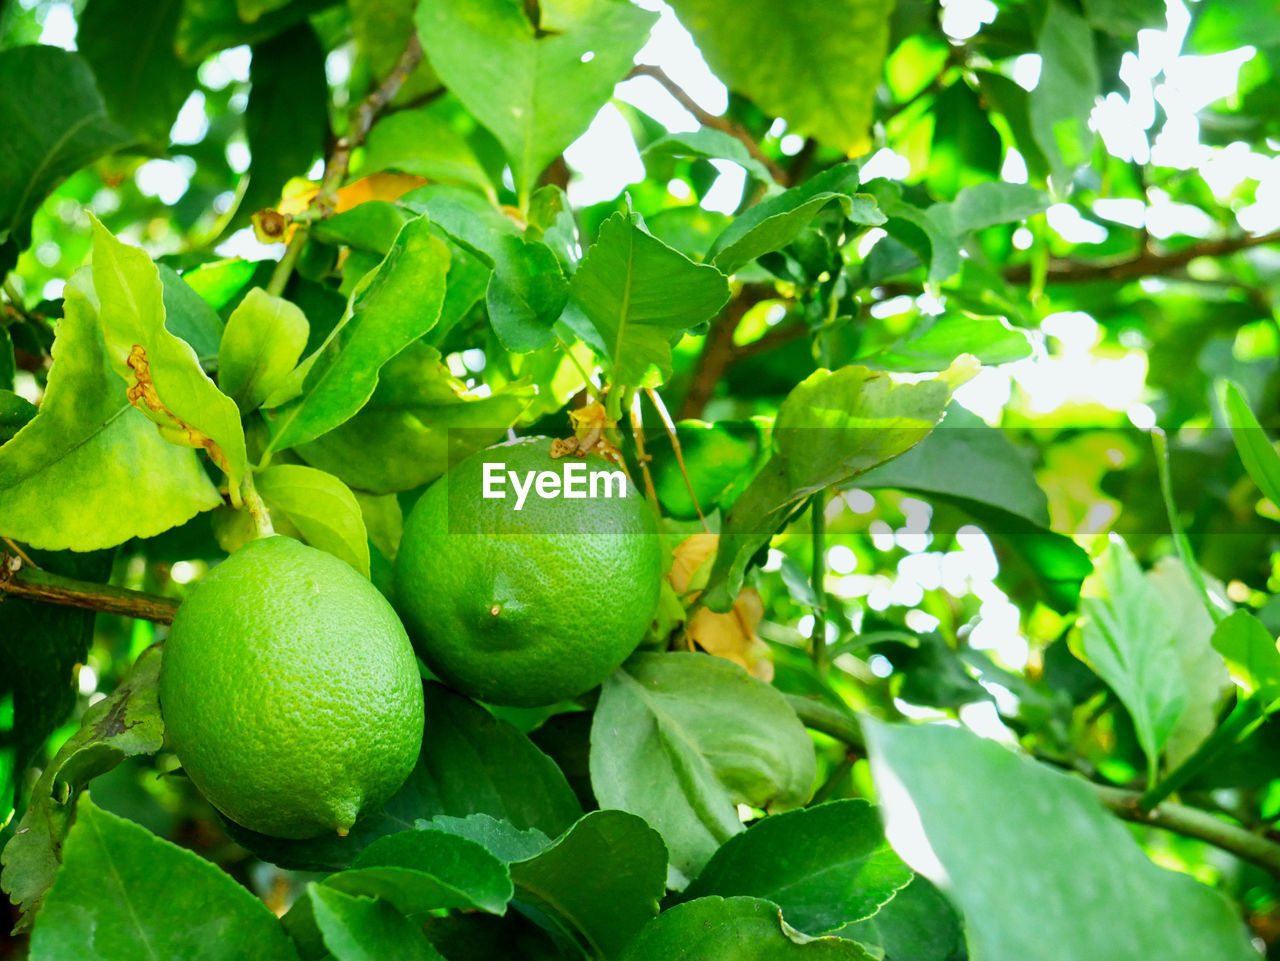 leaf, plant part, green color, food and drink, growth, fruit, plant, healthy eating, food, freshness, nature, close-up, wellbeing, tree, day, no people, fruit tree, outdoors, beauty in nature, focus on foreground, ripe